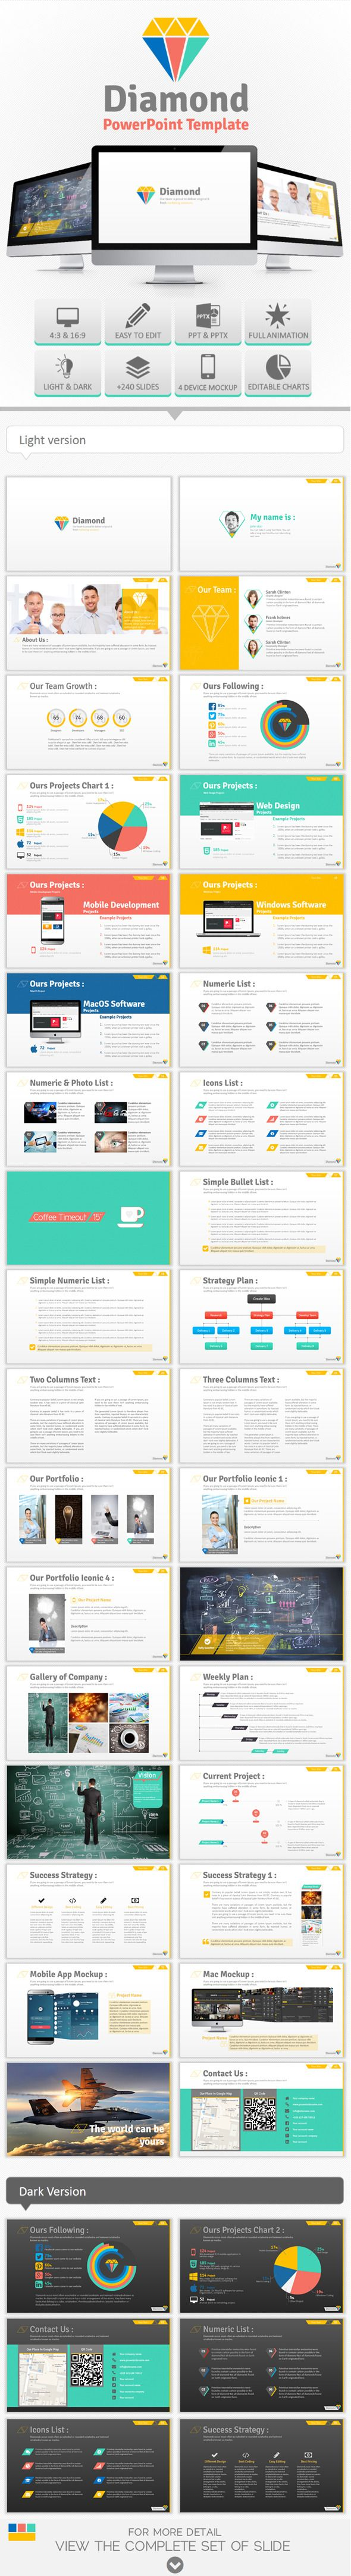 Diamond PowerPoint Template (PowerPoint Templates)